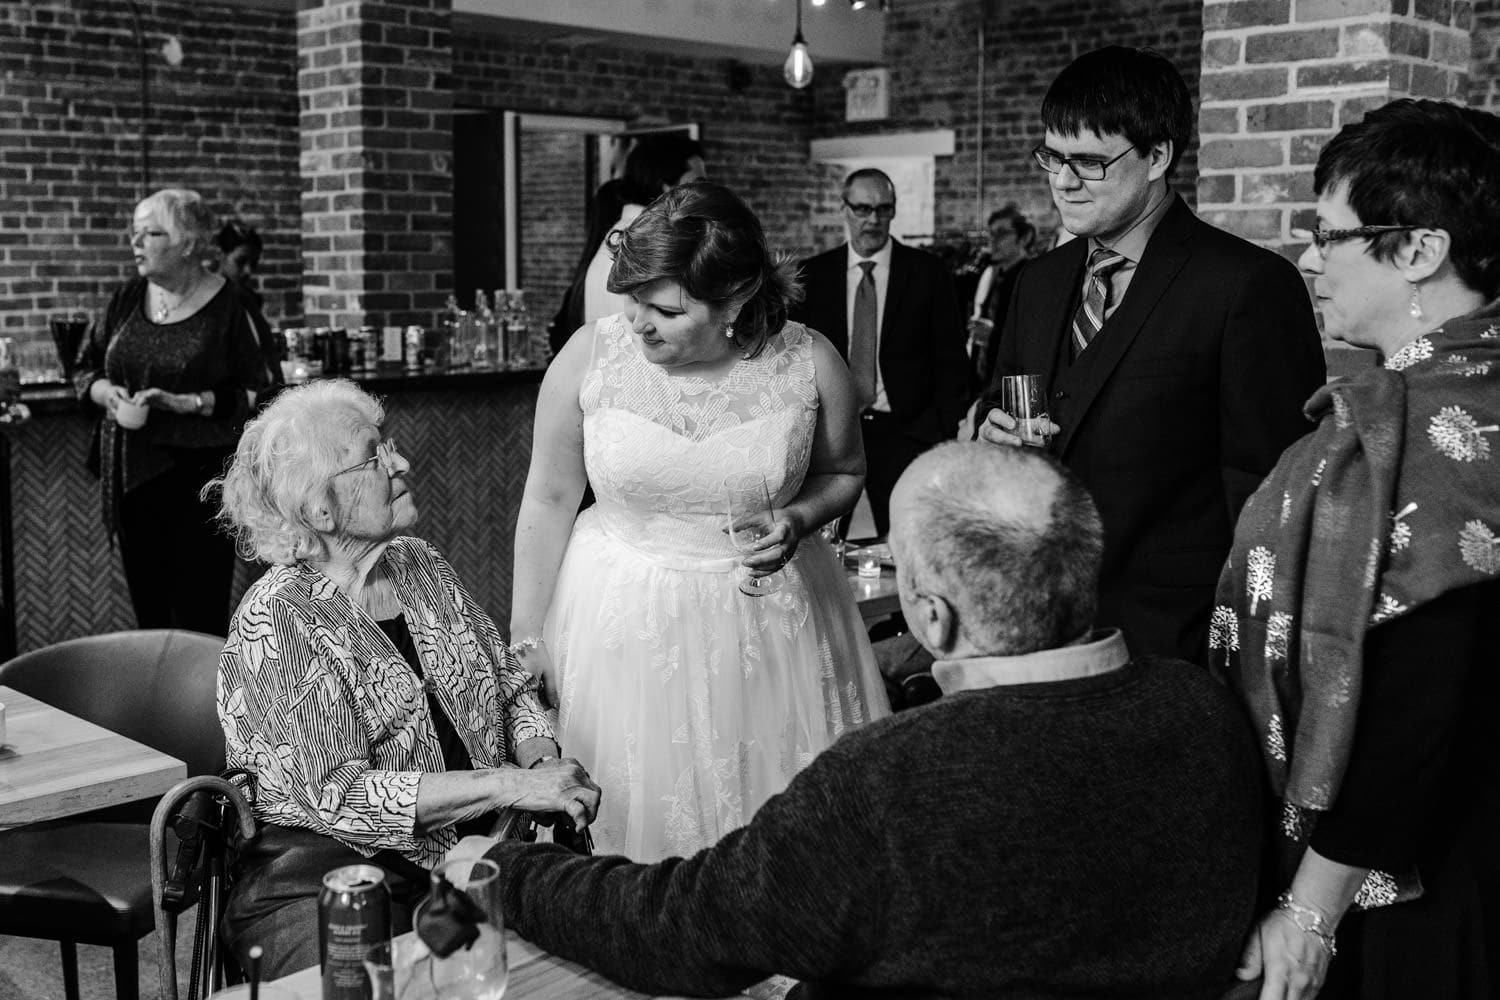 bride and groom talk with grandmother after wedding ceremony